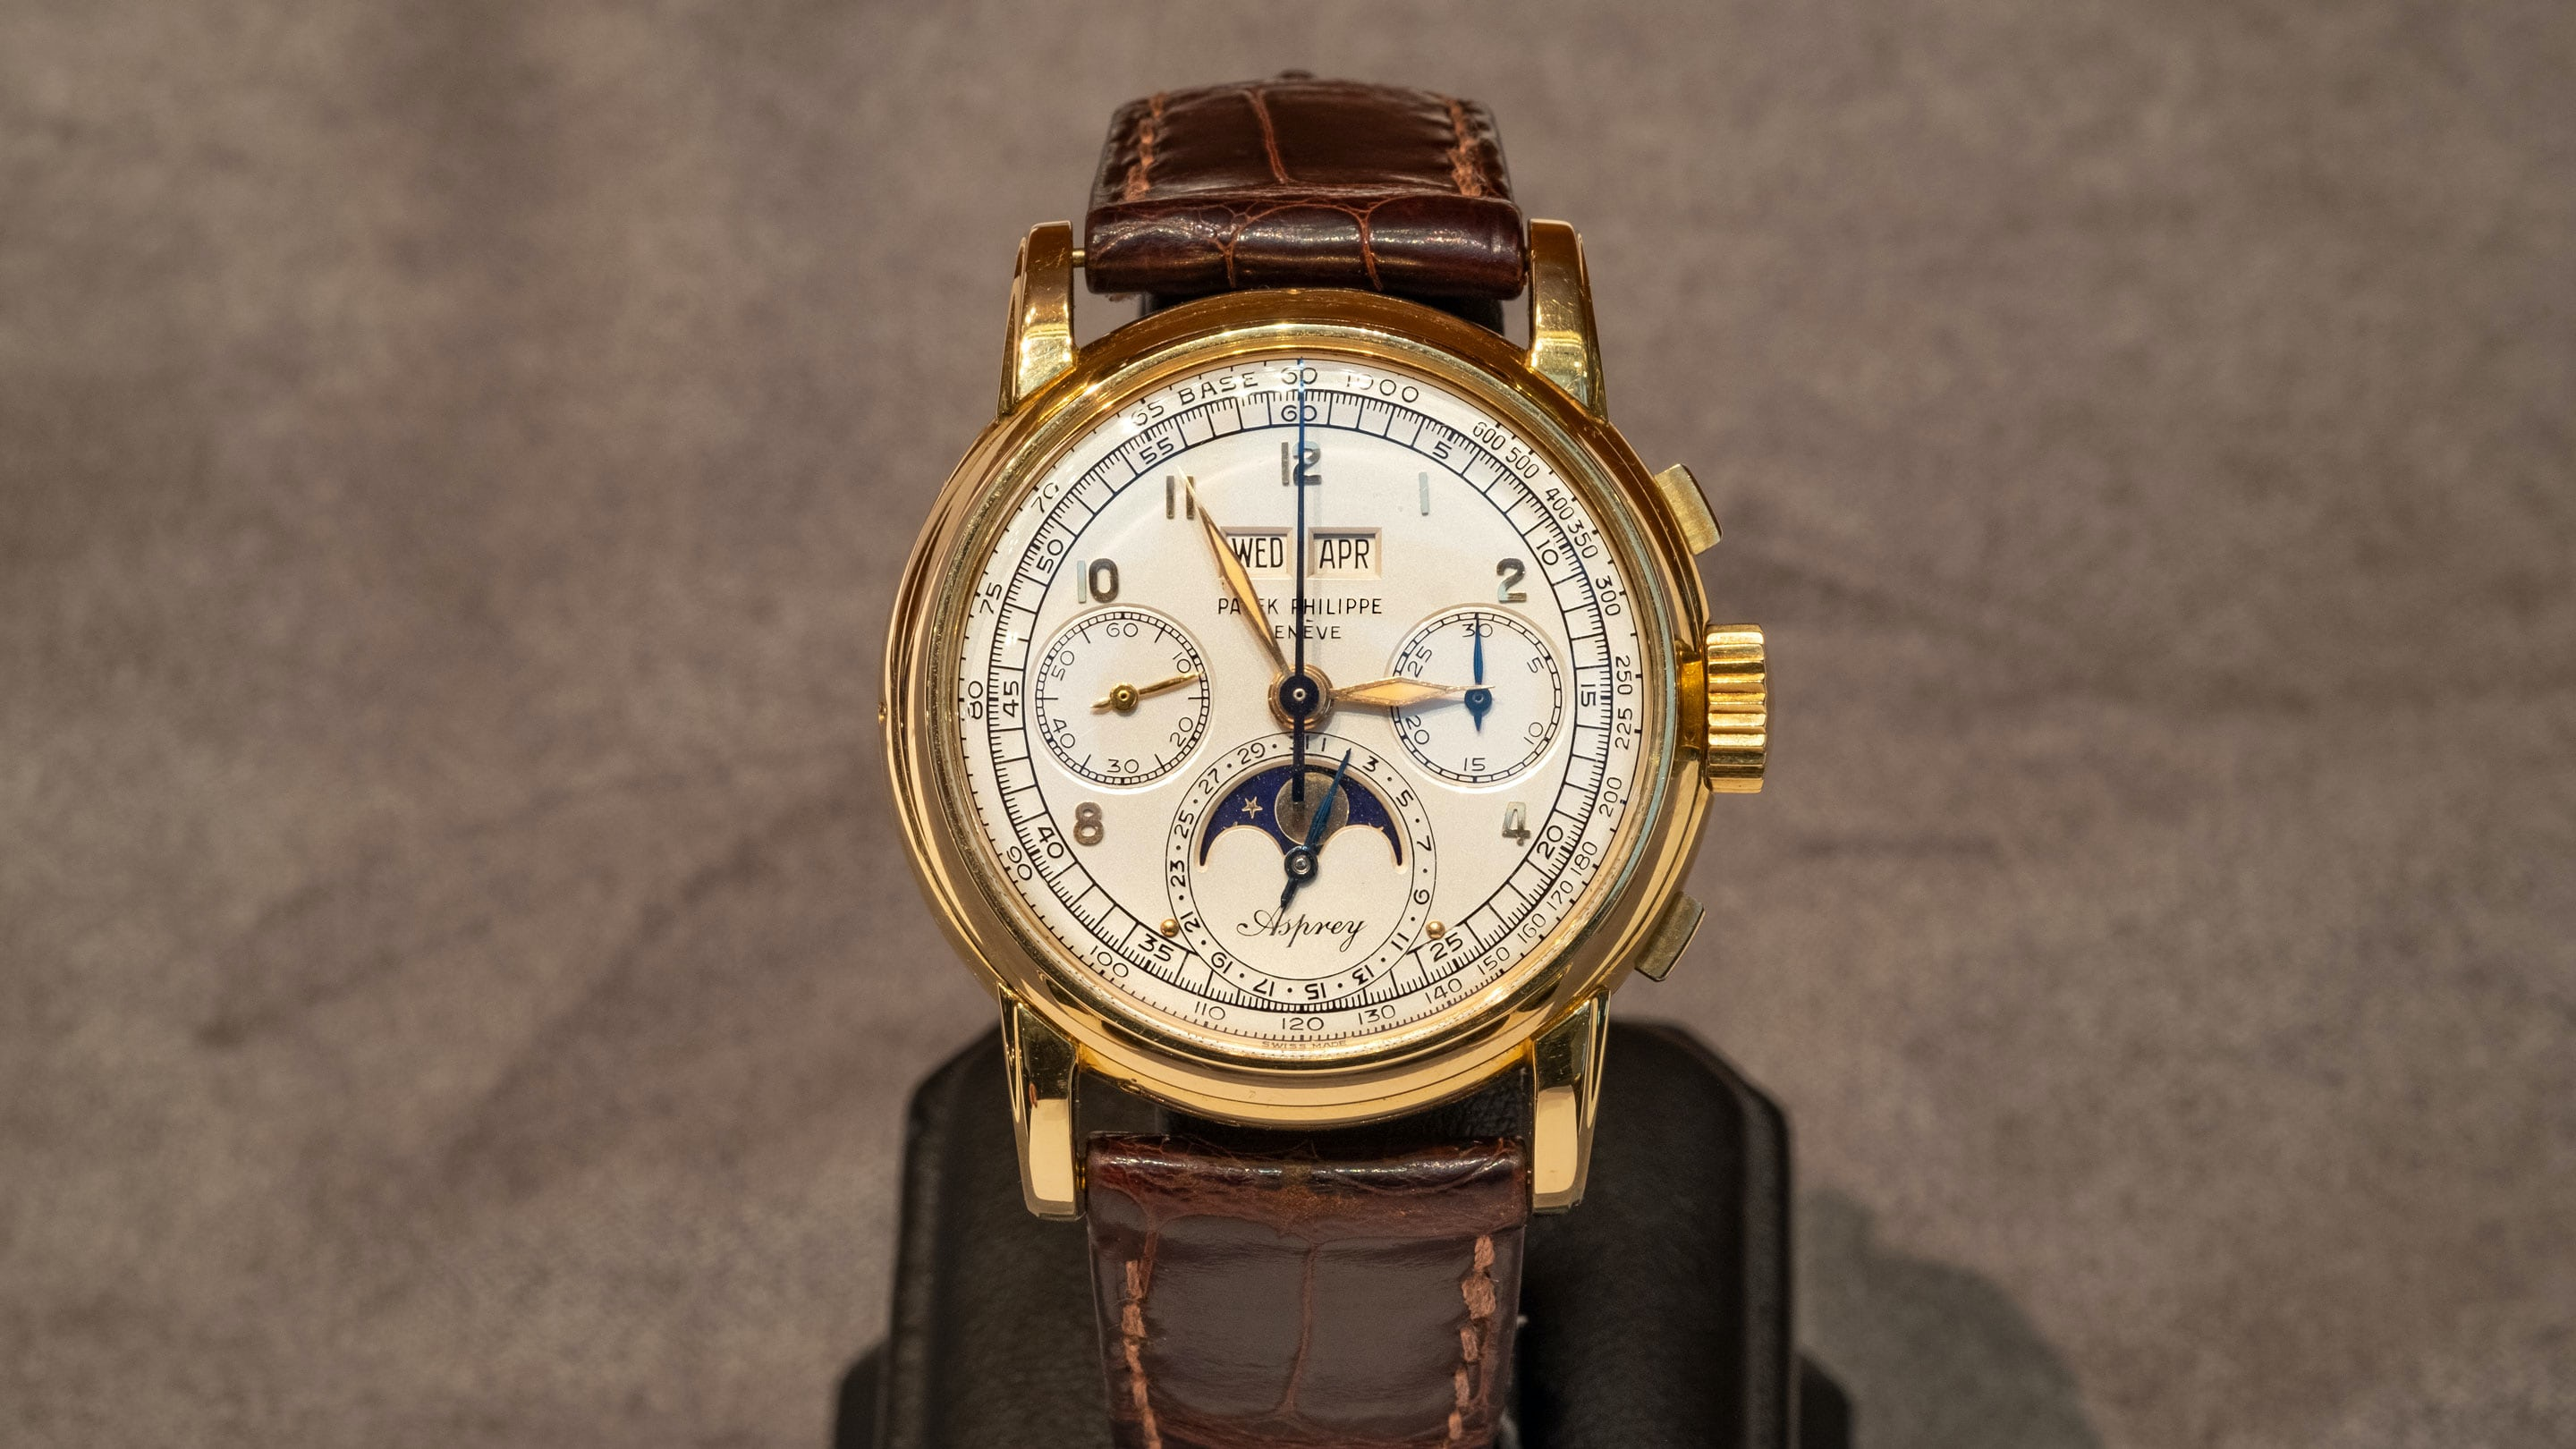 Breaking News: The Only Known Asprey-Signed Patek Philippe Ref. 2499 Sells  For $3.88 Million At Sotheby's, Setting A New World Record - HODINKEE